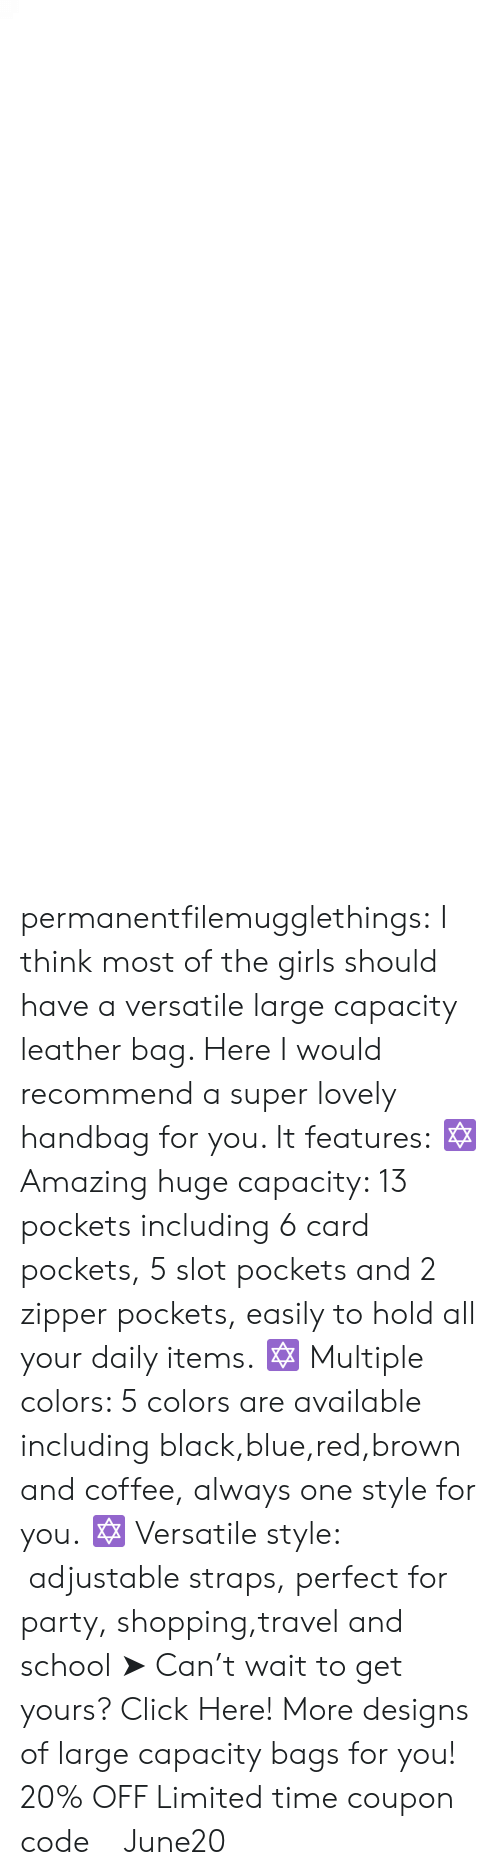 versatile: permanentfilemugglethings:  I think most of the girls should have a versatile large capacity leather bag. Here I would recommend a super lovely handbag for you. It features: ✡ Amazing huge capacity: 13 pockets including 6 card pockets, 5 slot pockets and 2 zipper pockets, easily to hold all your daily items. ✡ Multiple colors: 5 colors are available including black,blue,red,brown and coffee, always one style for you. ✡ Versatile style:  adjustable straps, perfect for party, shopping,travel and school ➤ Can't wait to get yours? Click Here! More designs of large capacity bags for you! 20% OFF Limited time coupon code : June20